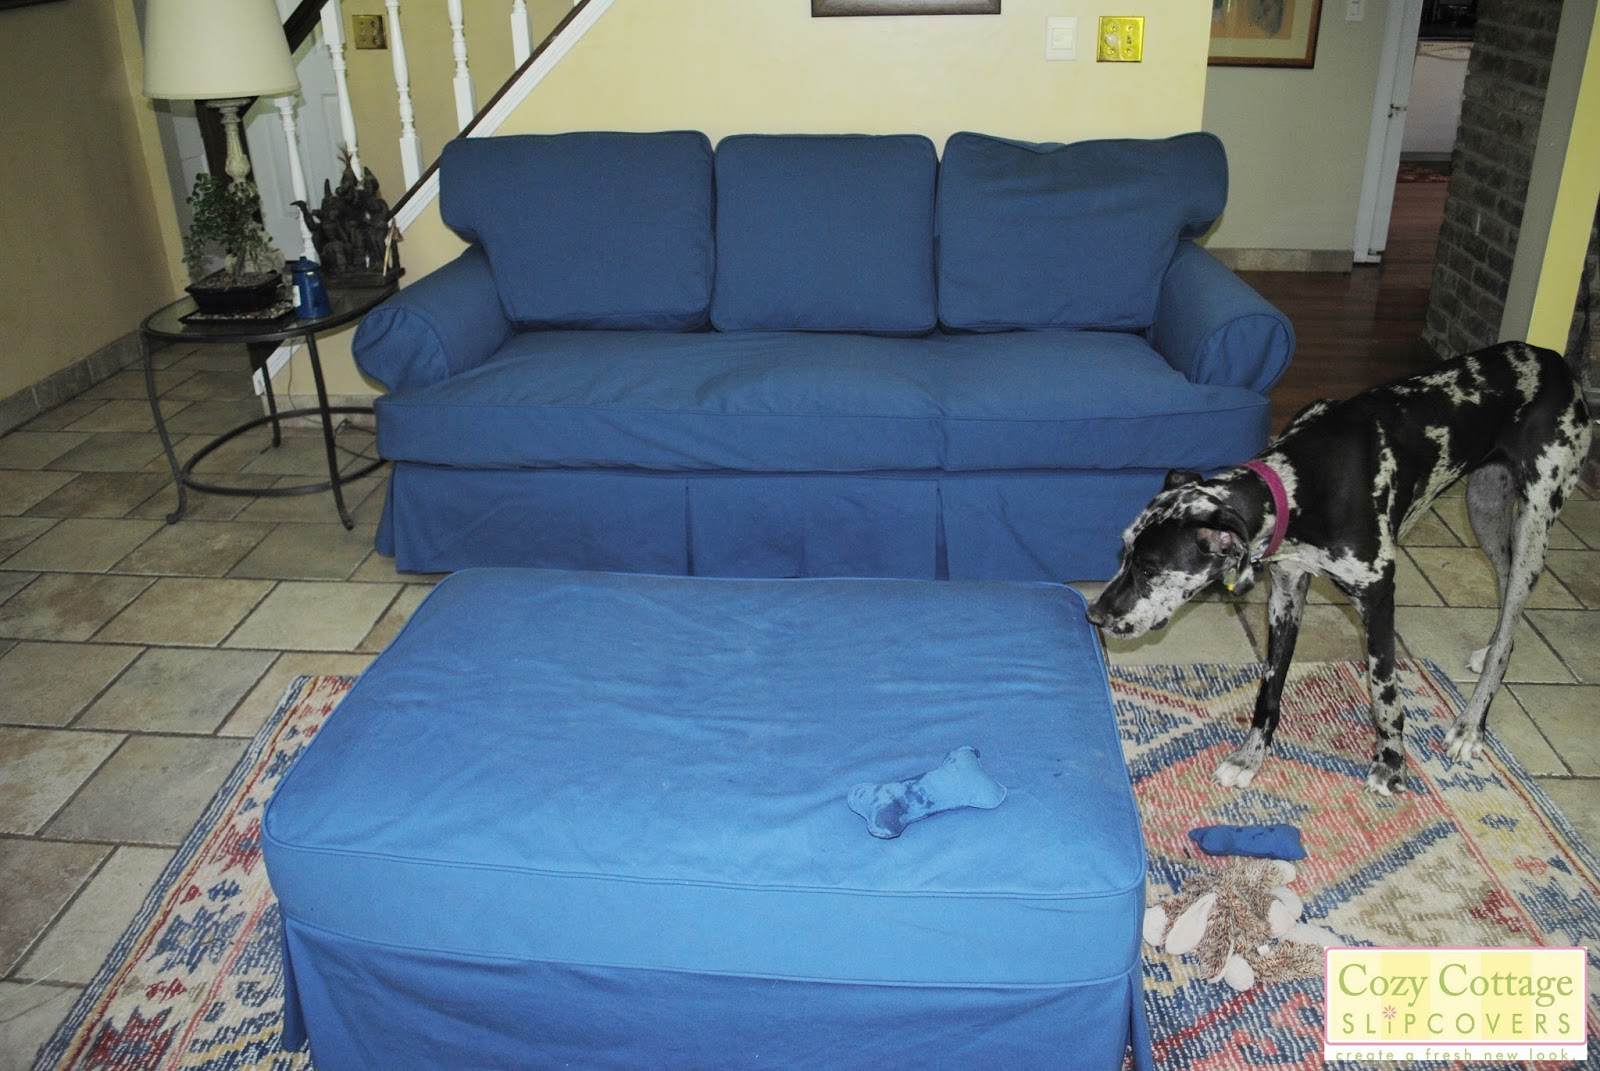 Leather Sofa Cleaning Sheffield Duncan Phyfe Characteristics Cozy Cottage Slipcovers Brown To Blue Cotton